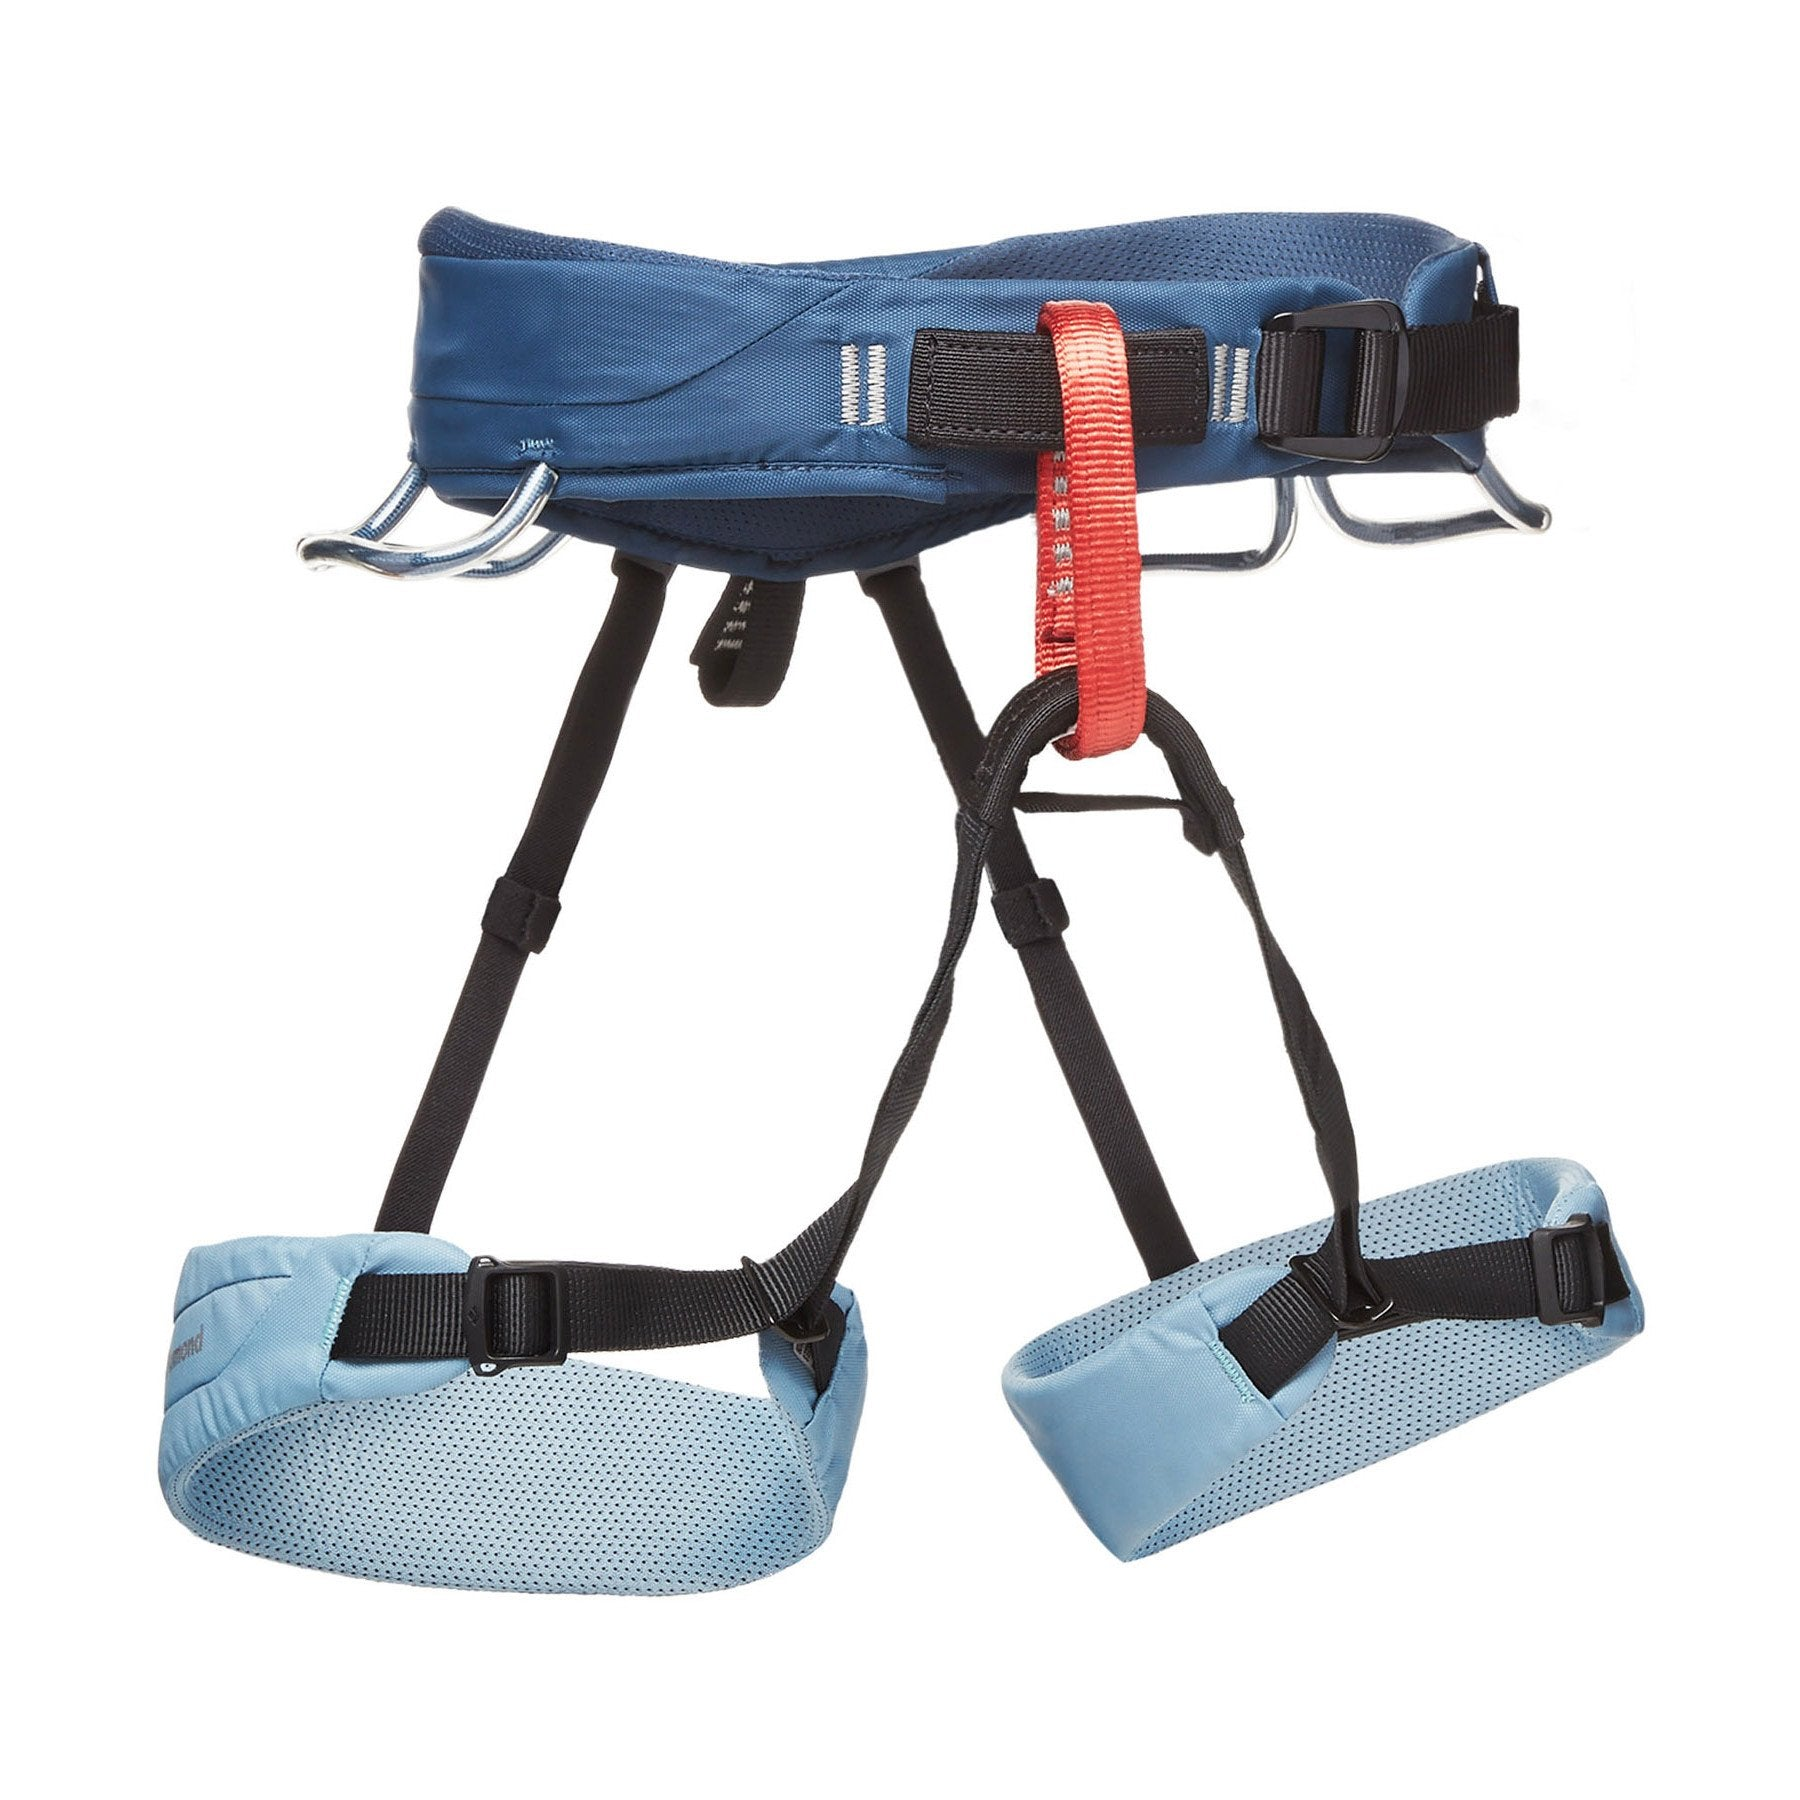 Black Diamond Momentum Womens climbing harness, front/side view in blue, black and red colours